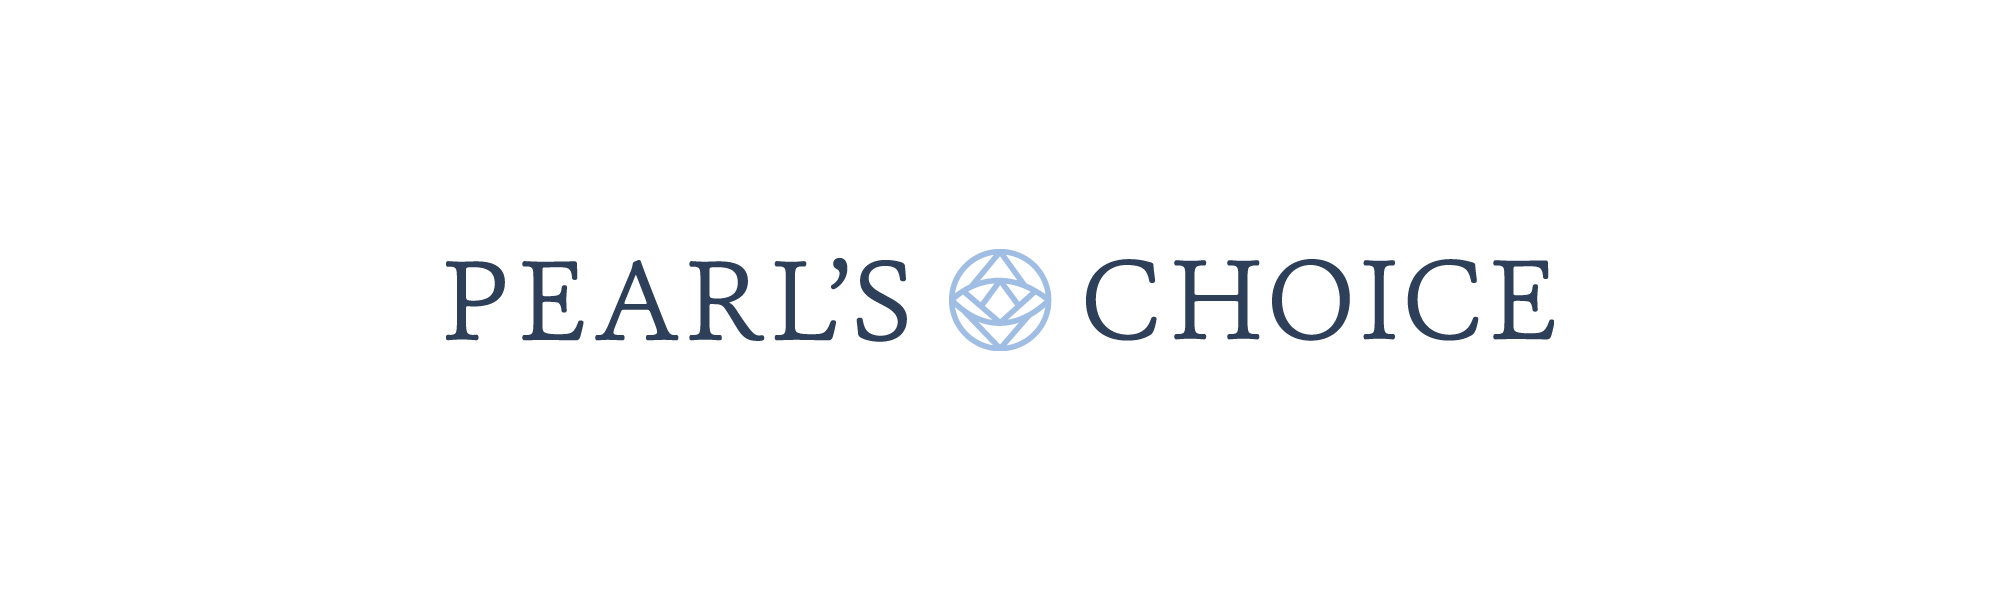 logo-pearlschoice.png